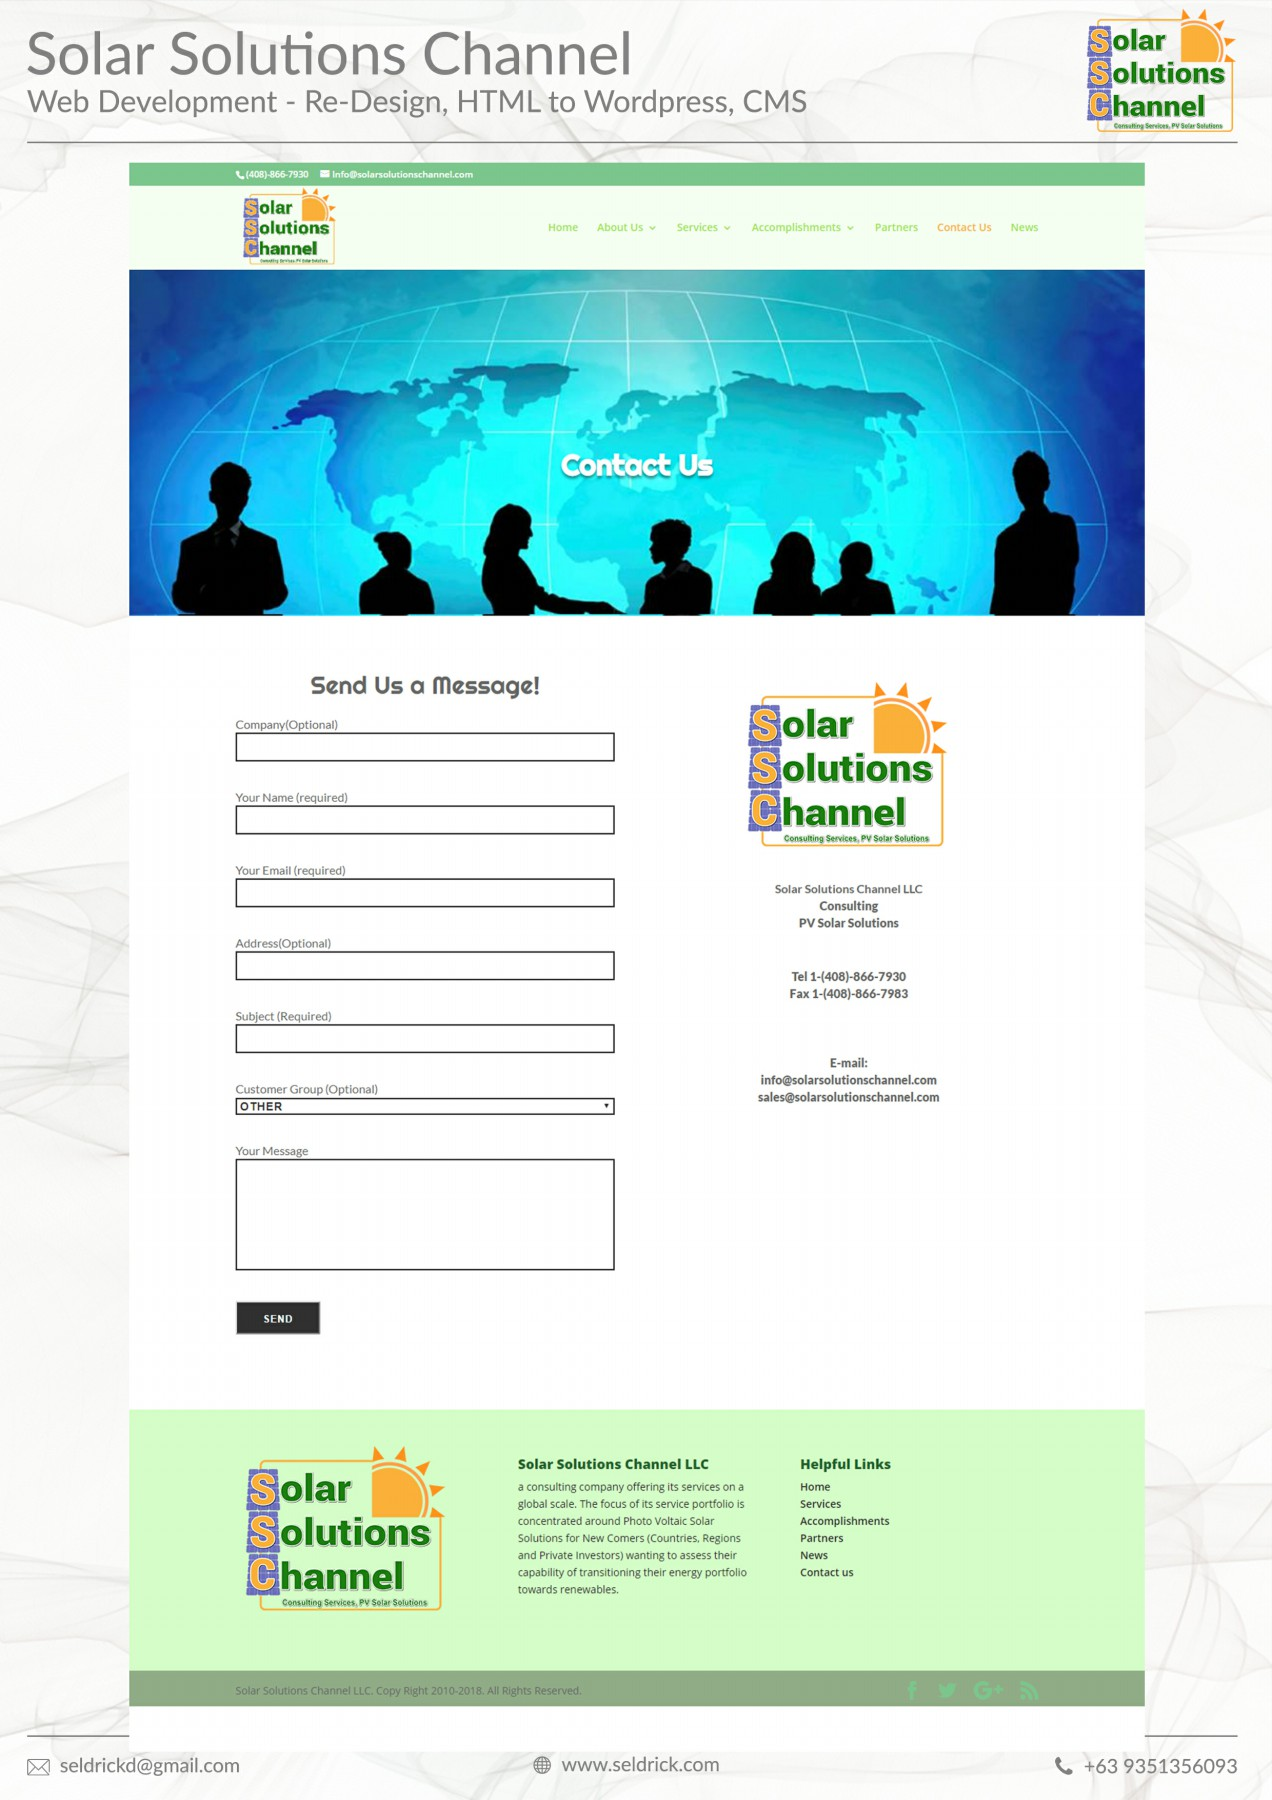 Small-ssc-website-page-6